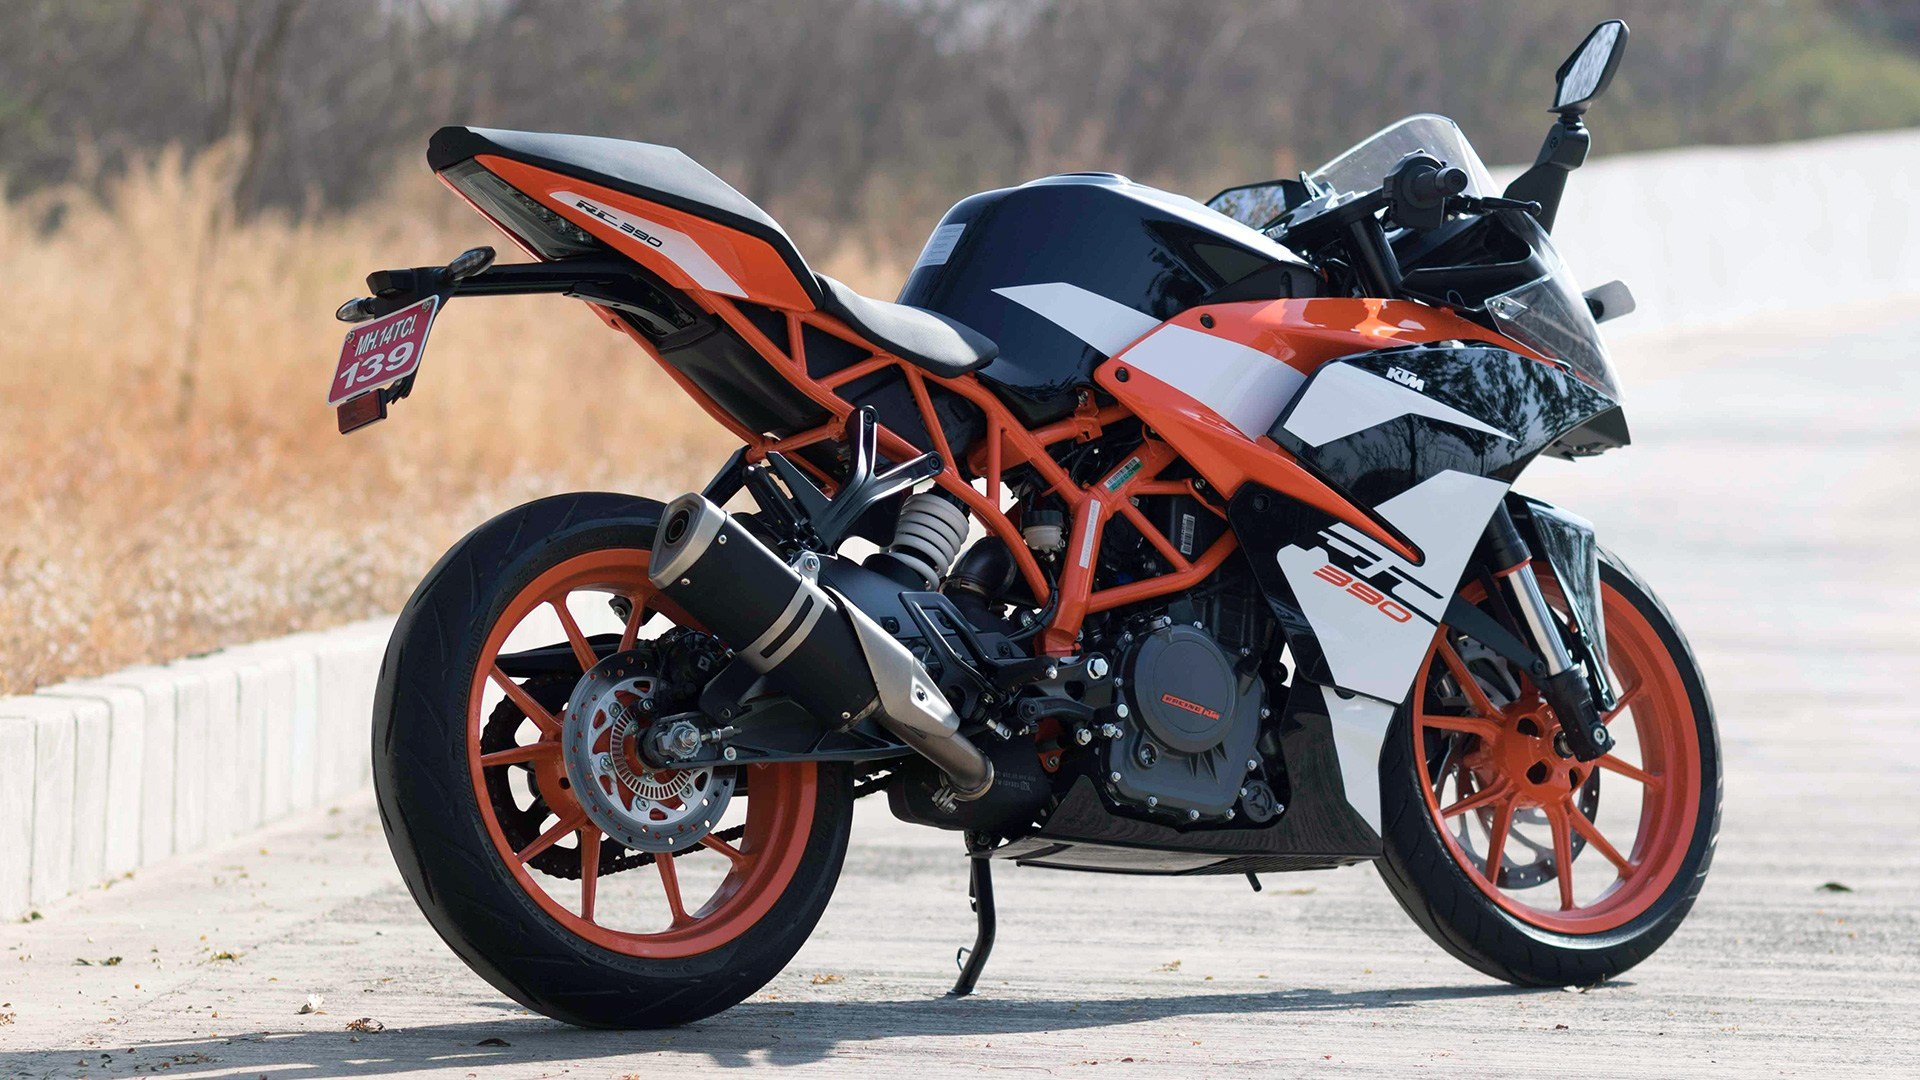 New Ktm Rc 390 2017 Price Mileage Reviews Specification On This Month